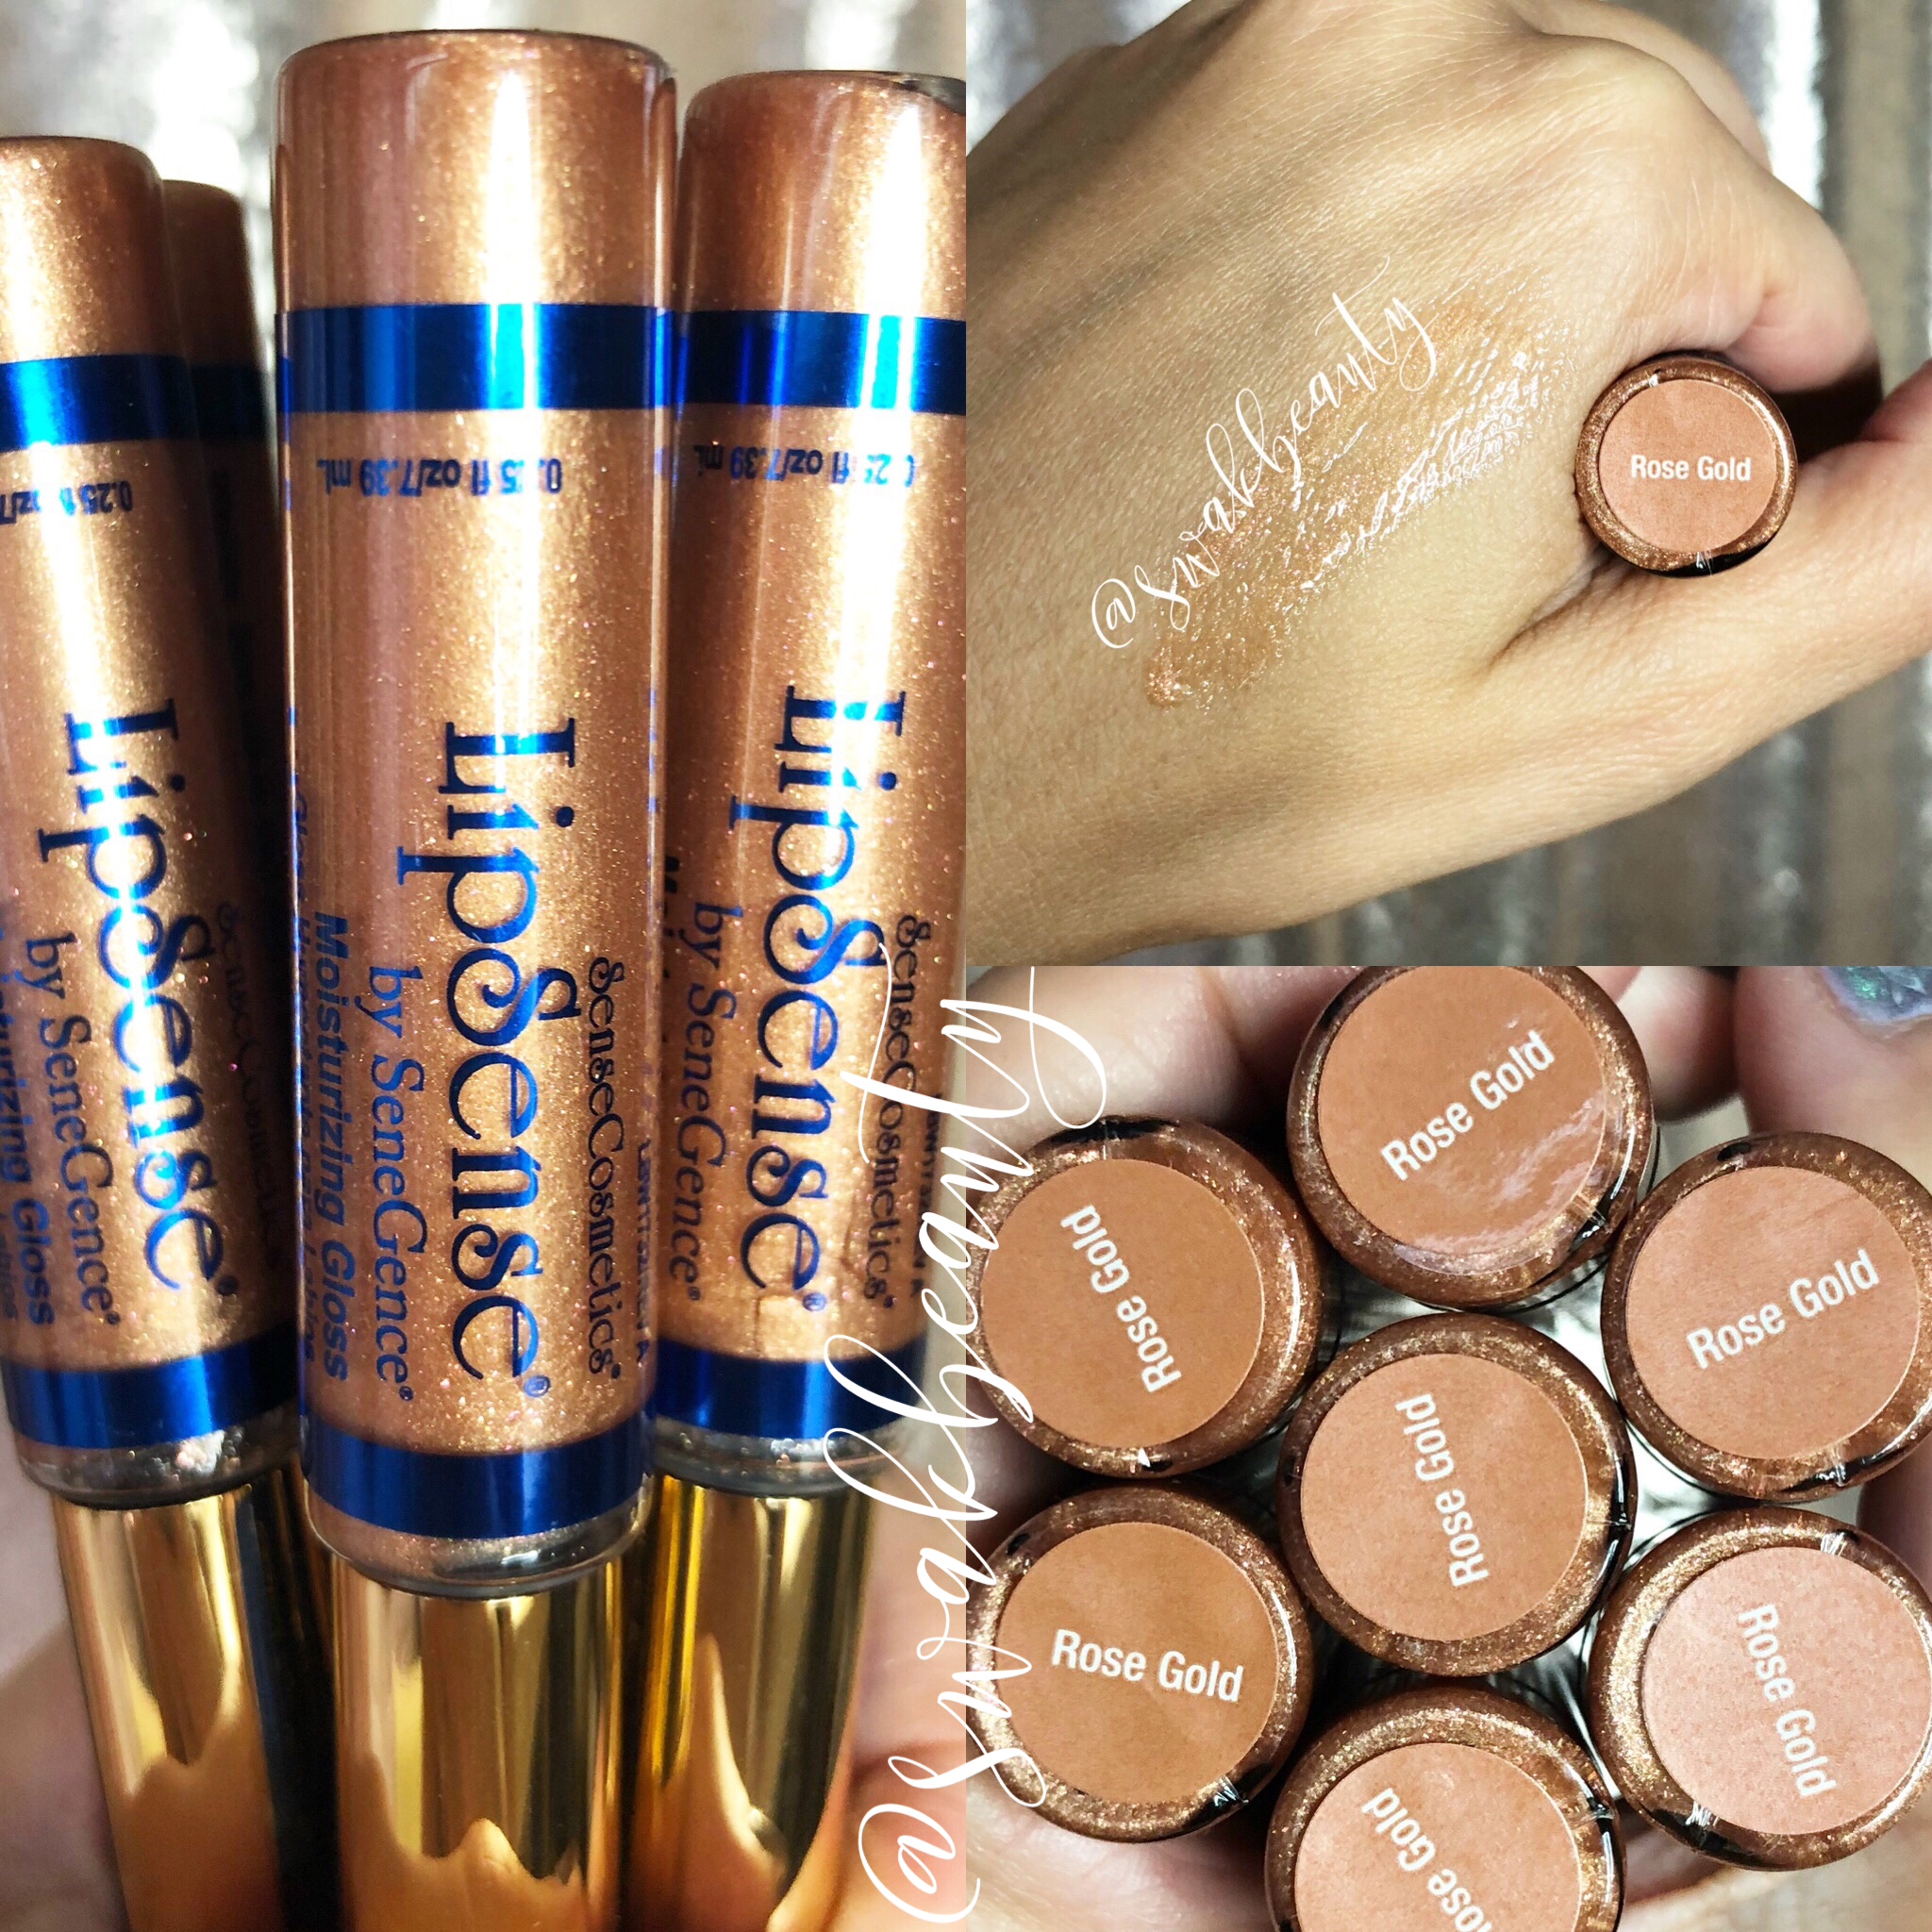 LIMITED EDITION ROSE GOLD COLLECTION LipSense Rose Gold